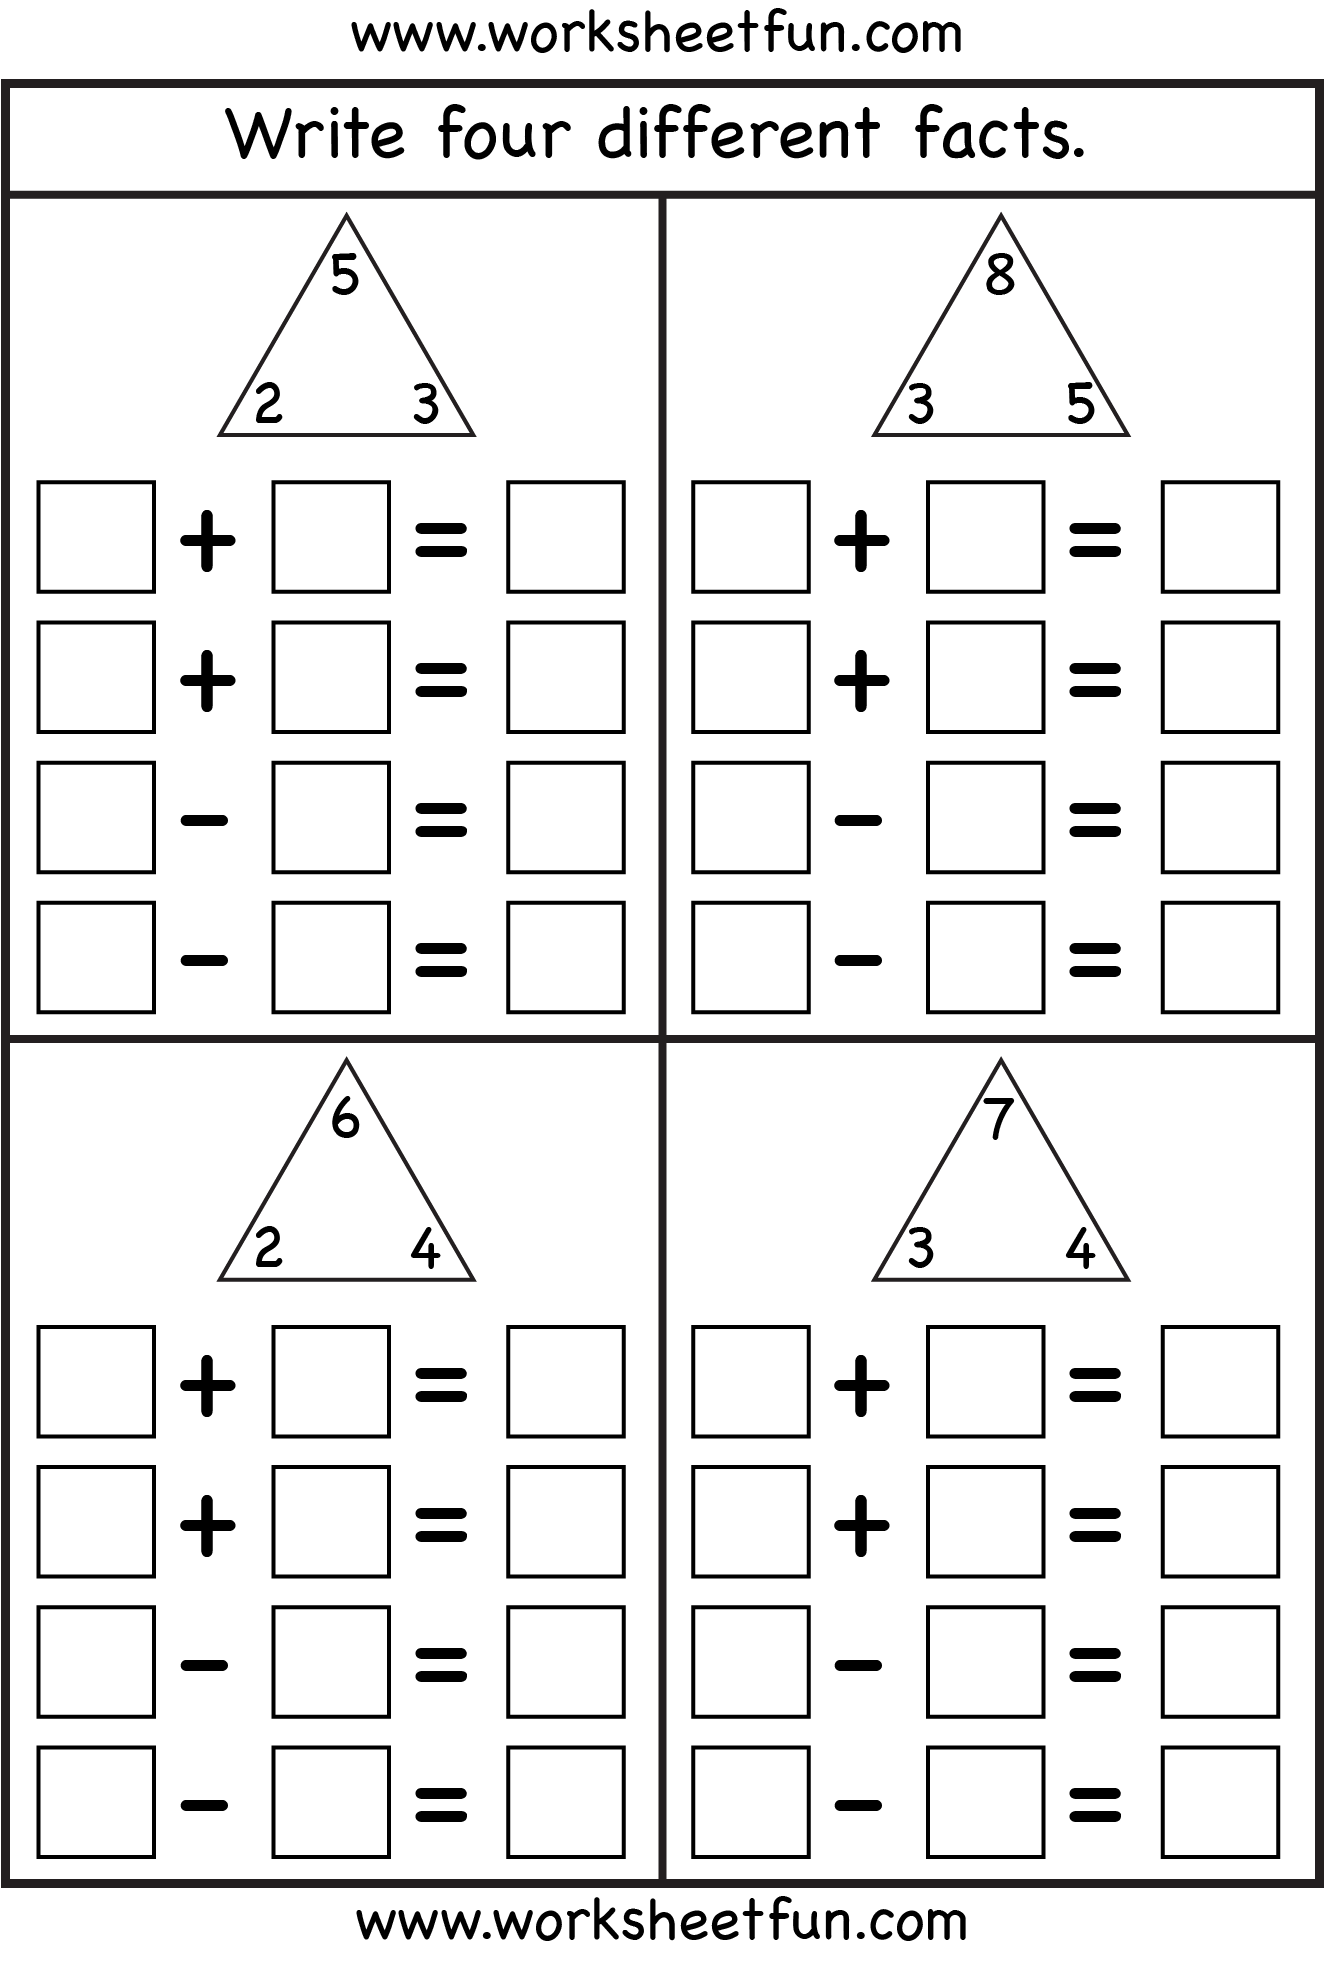 Worksheets Fact Family Worksheets fact family 4 worksheets printable pinterest worksheets